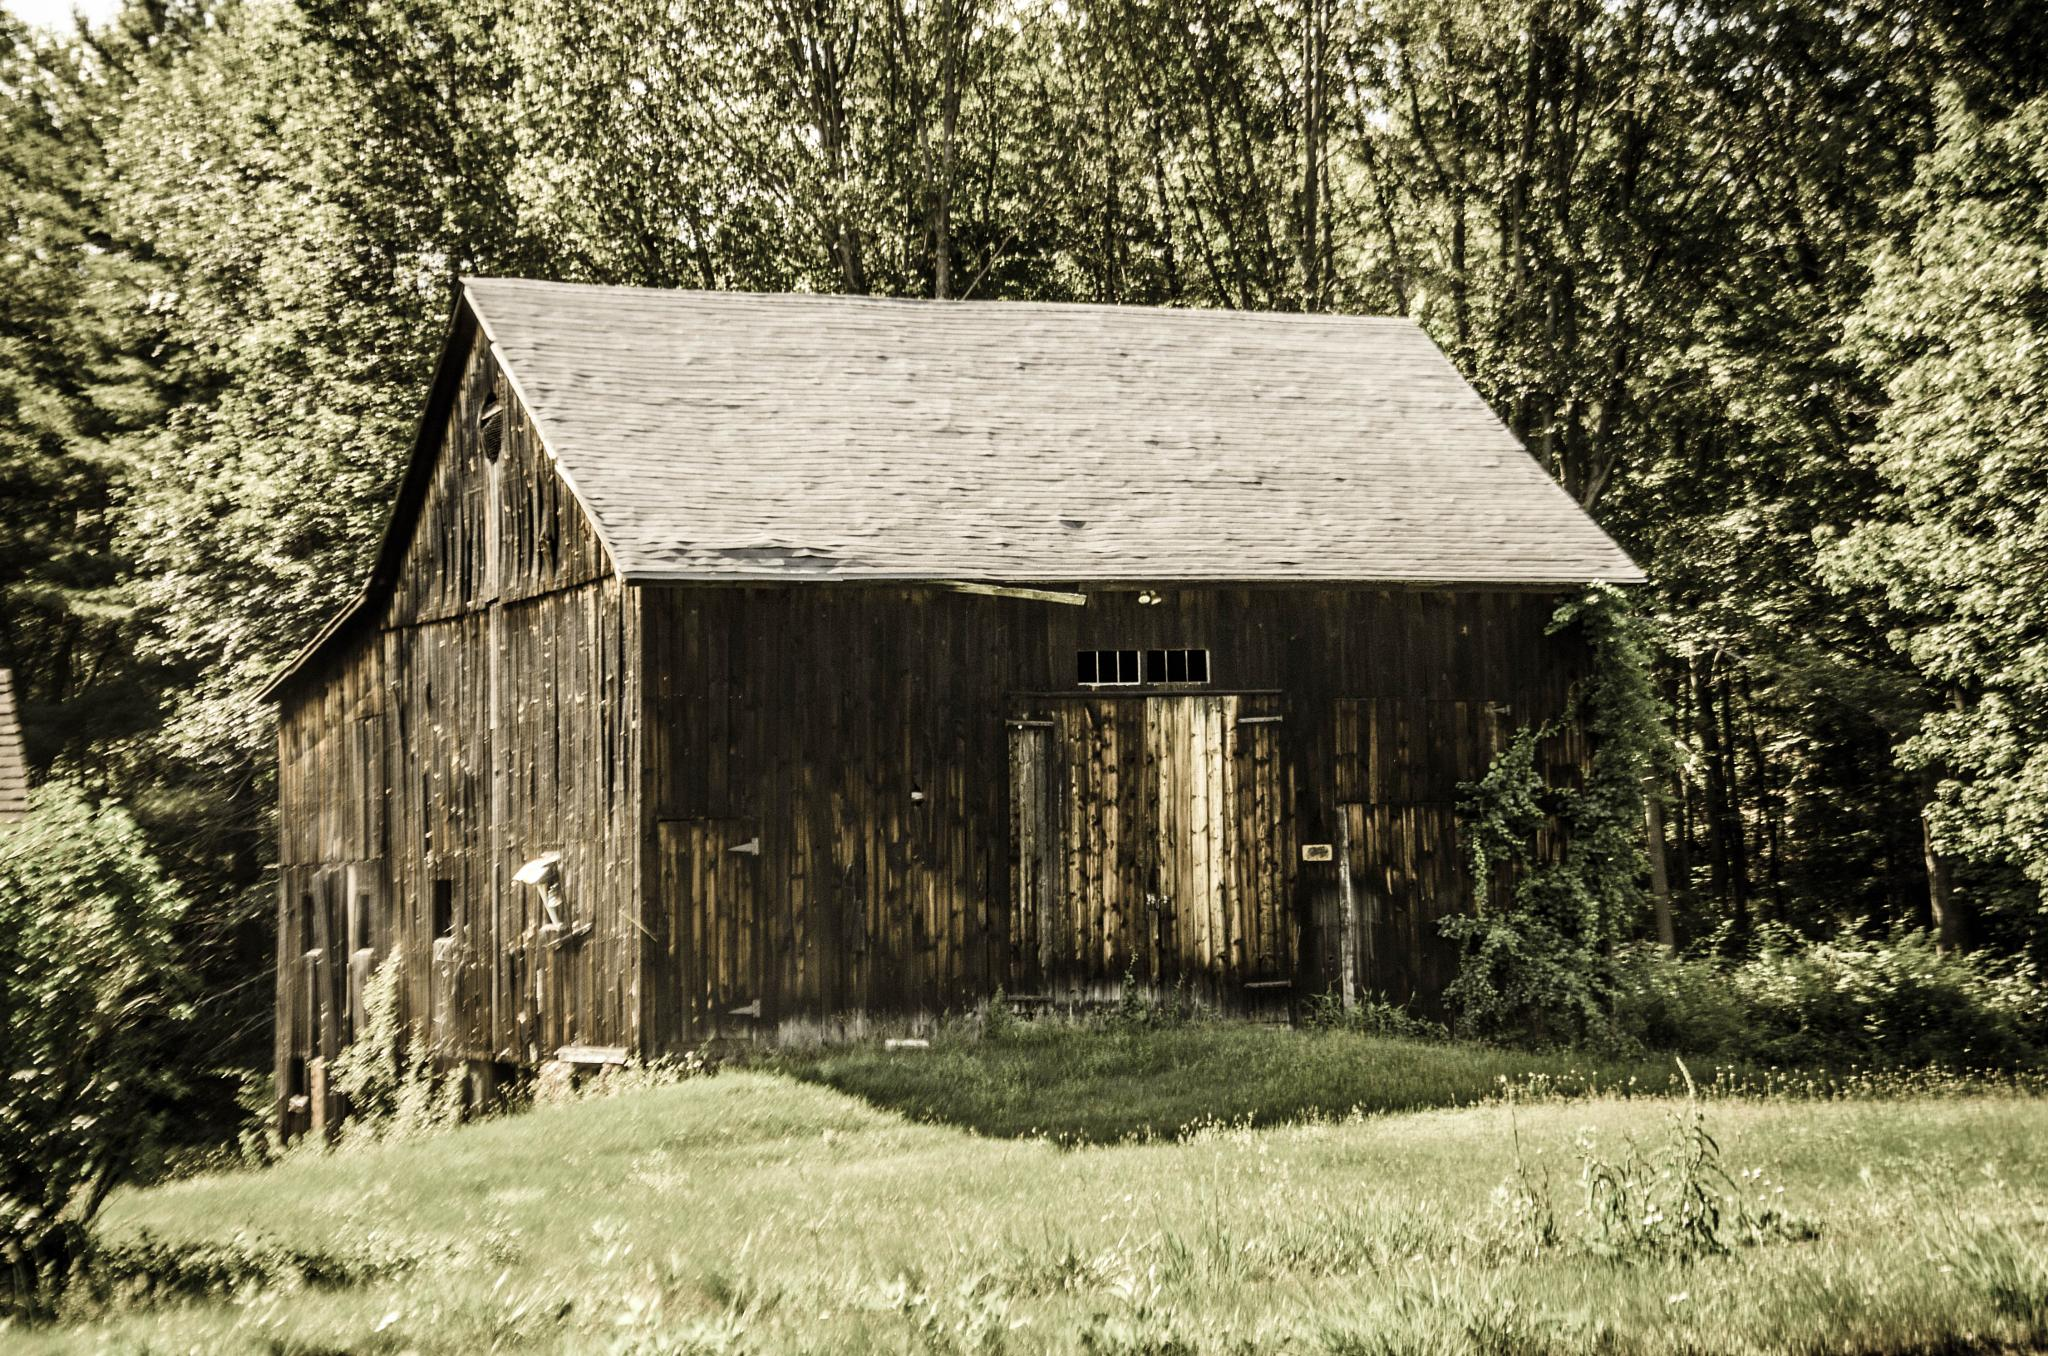 Old Country Work Shed by davidpinter